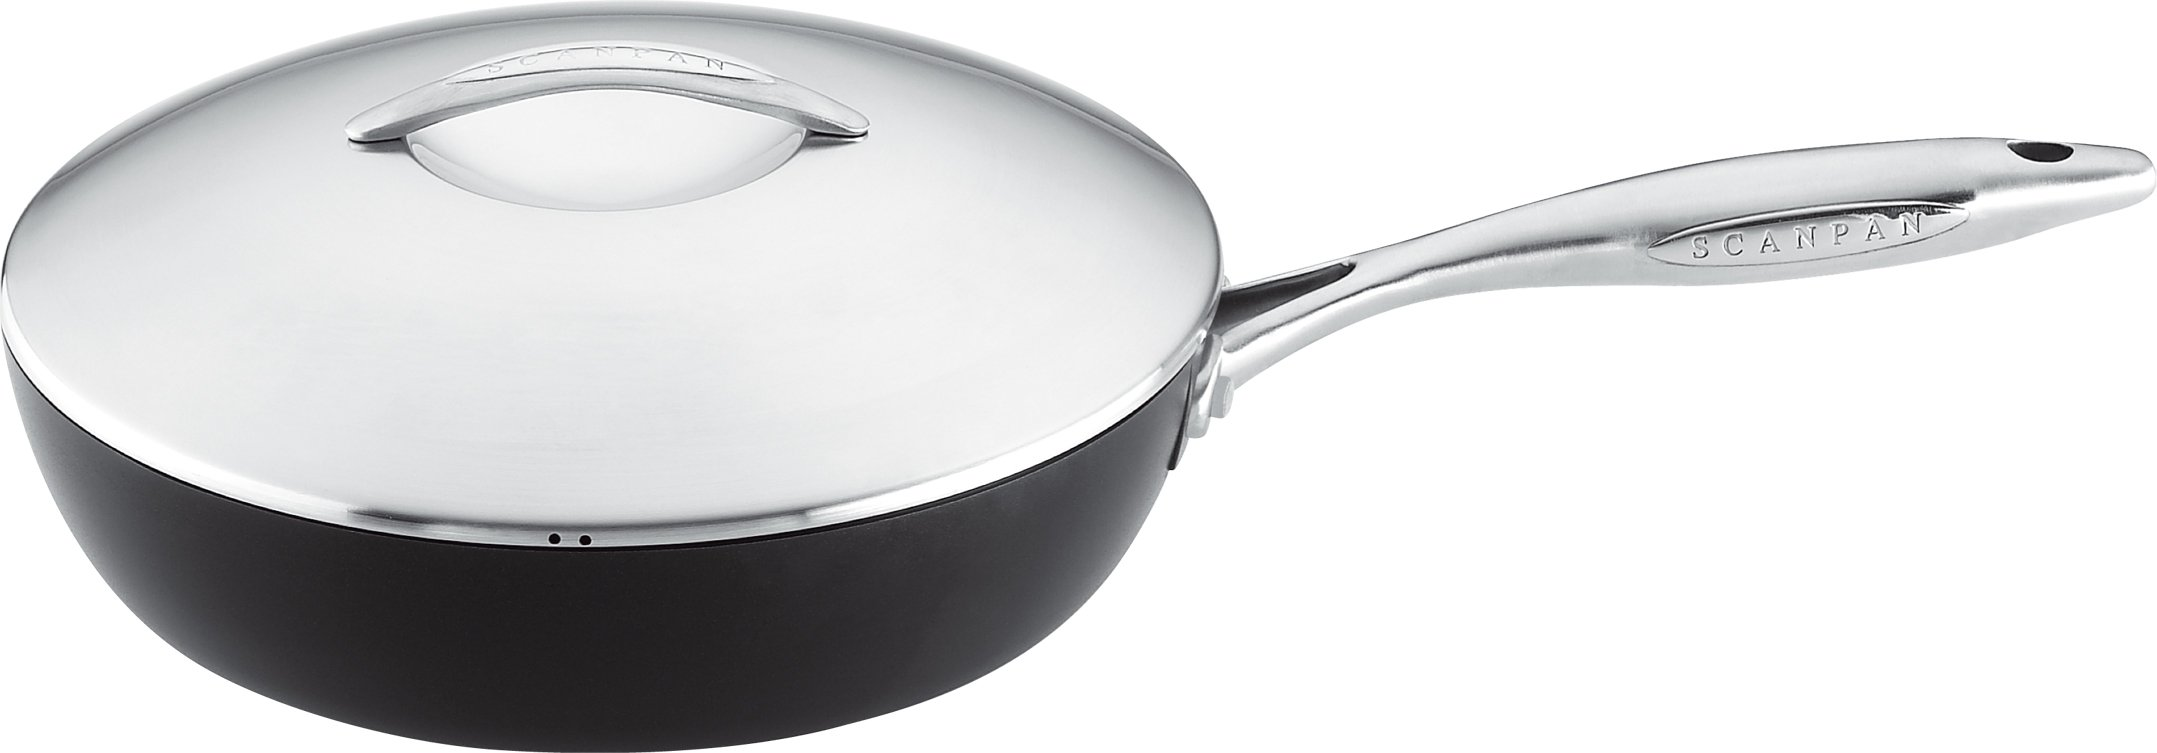 Scanpan Professional Covered Saute Pan 11-Inch by 3.25 QT